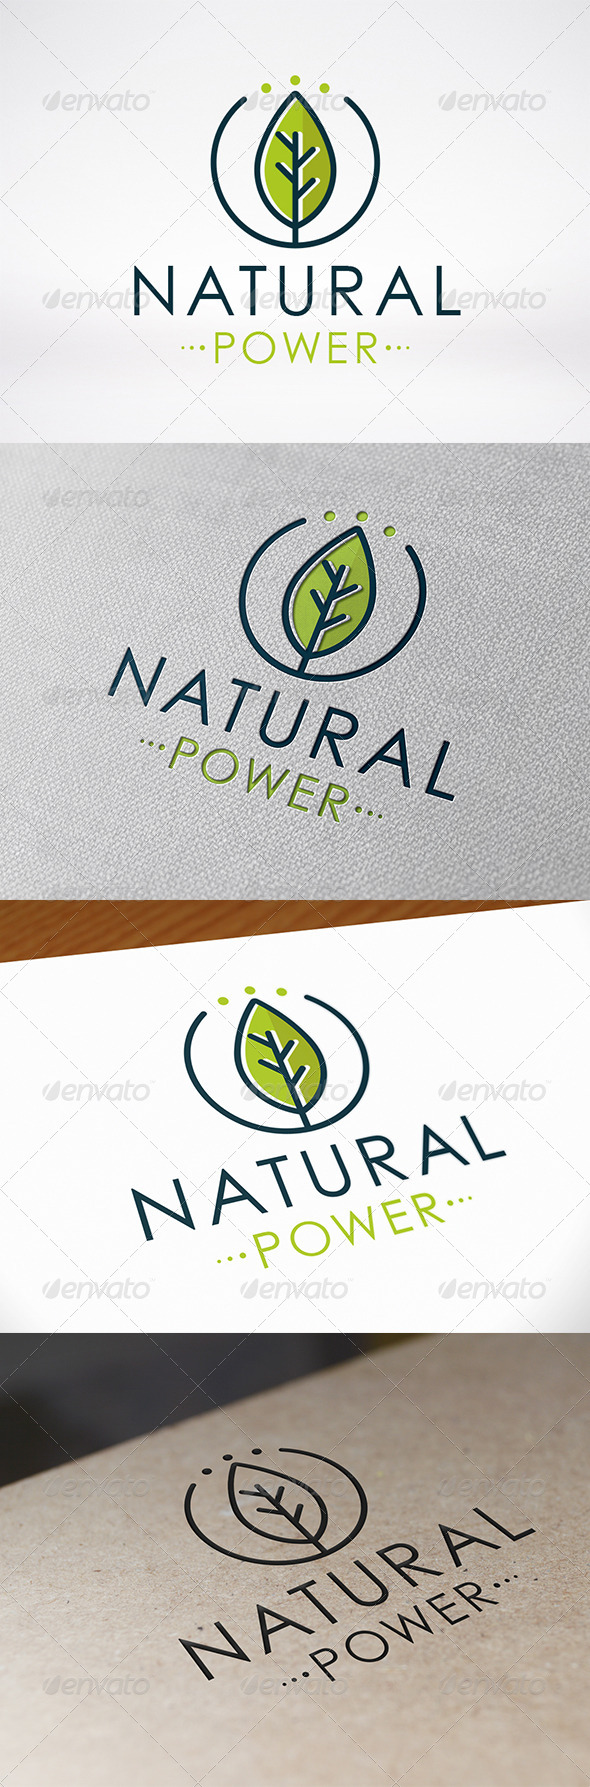 GraphicRiver Natural Power Logo Template 7336424